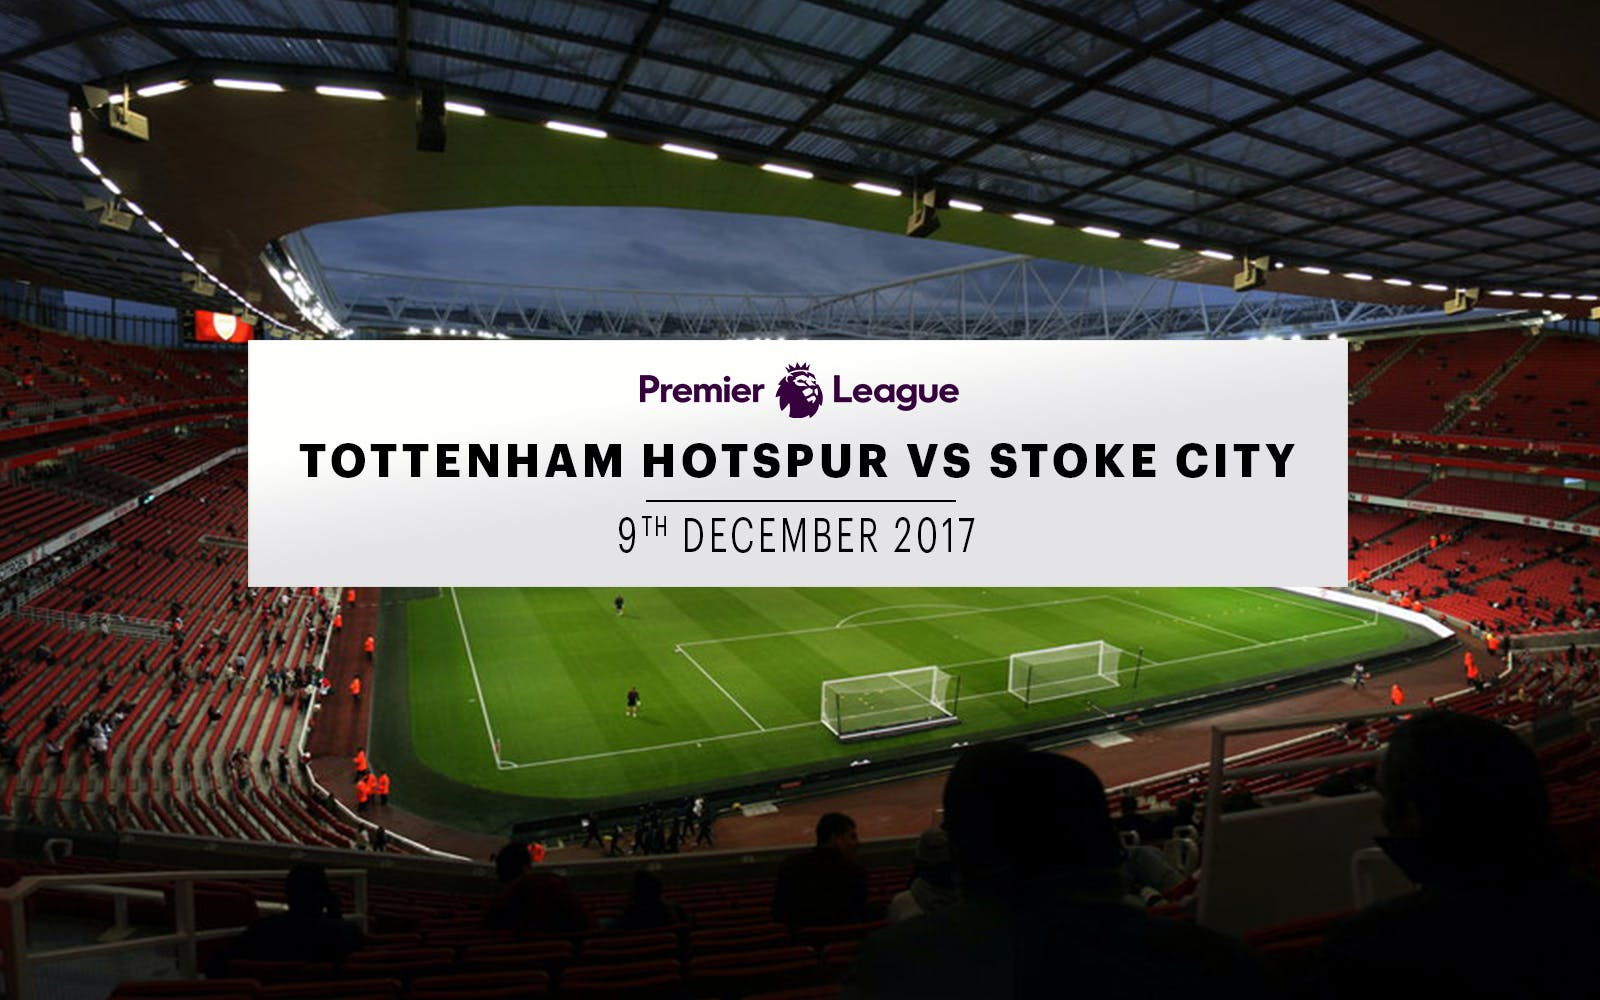 tottenham hotspur vs stoke city - 9th december 2017-1